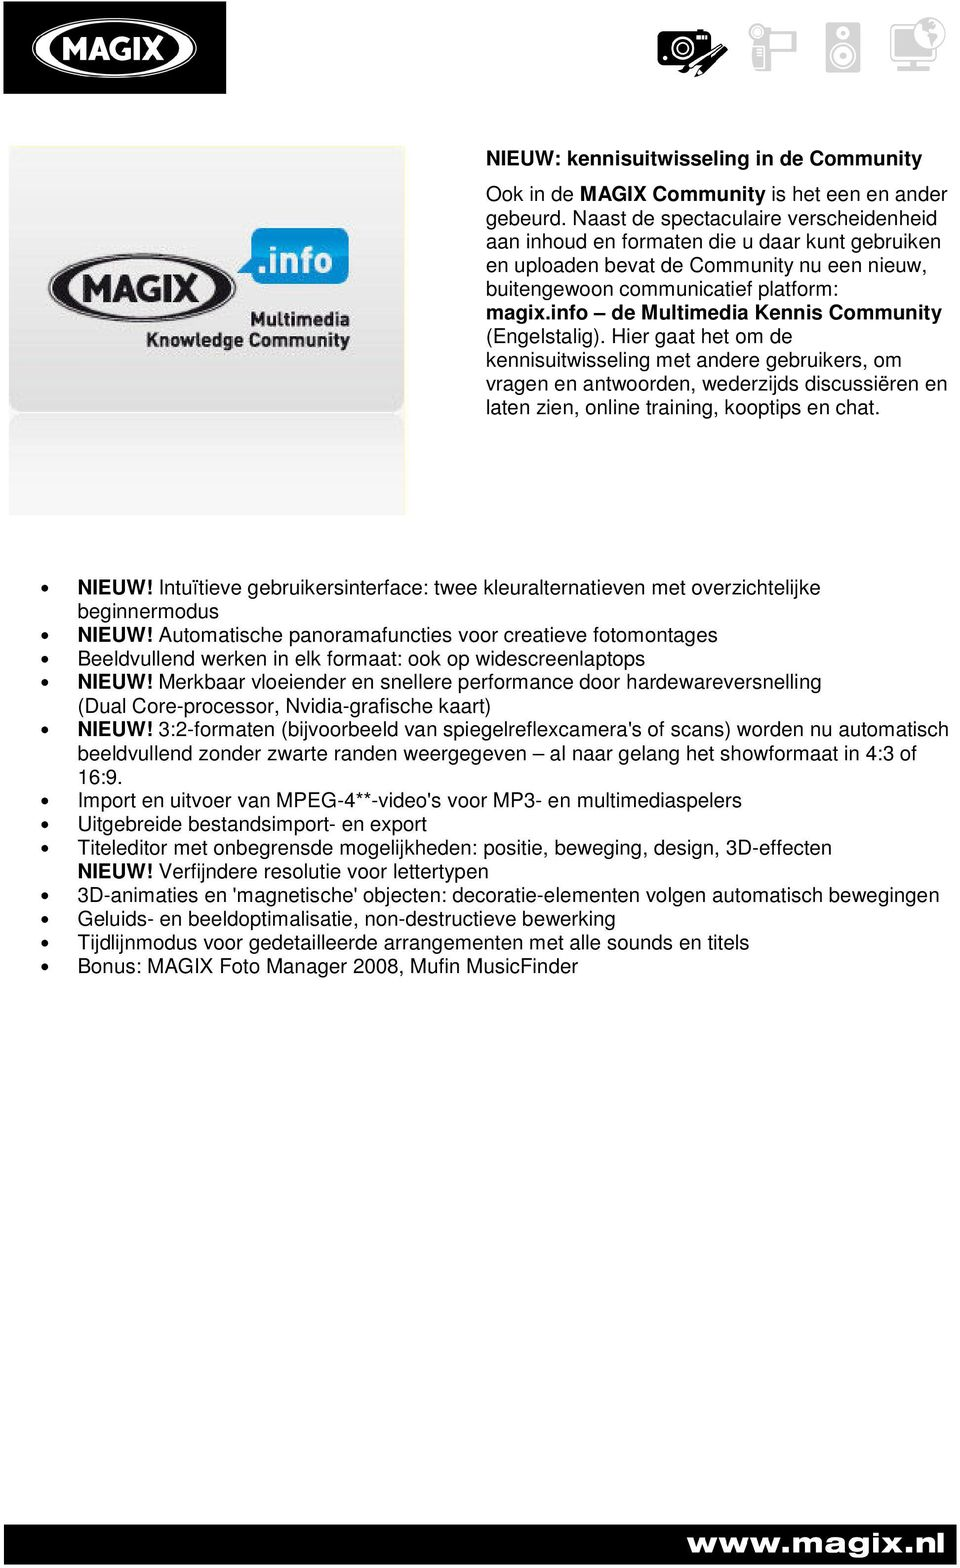 info de Multimedia Kennis Community (Engelstalig).